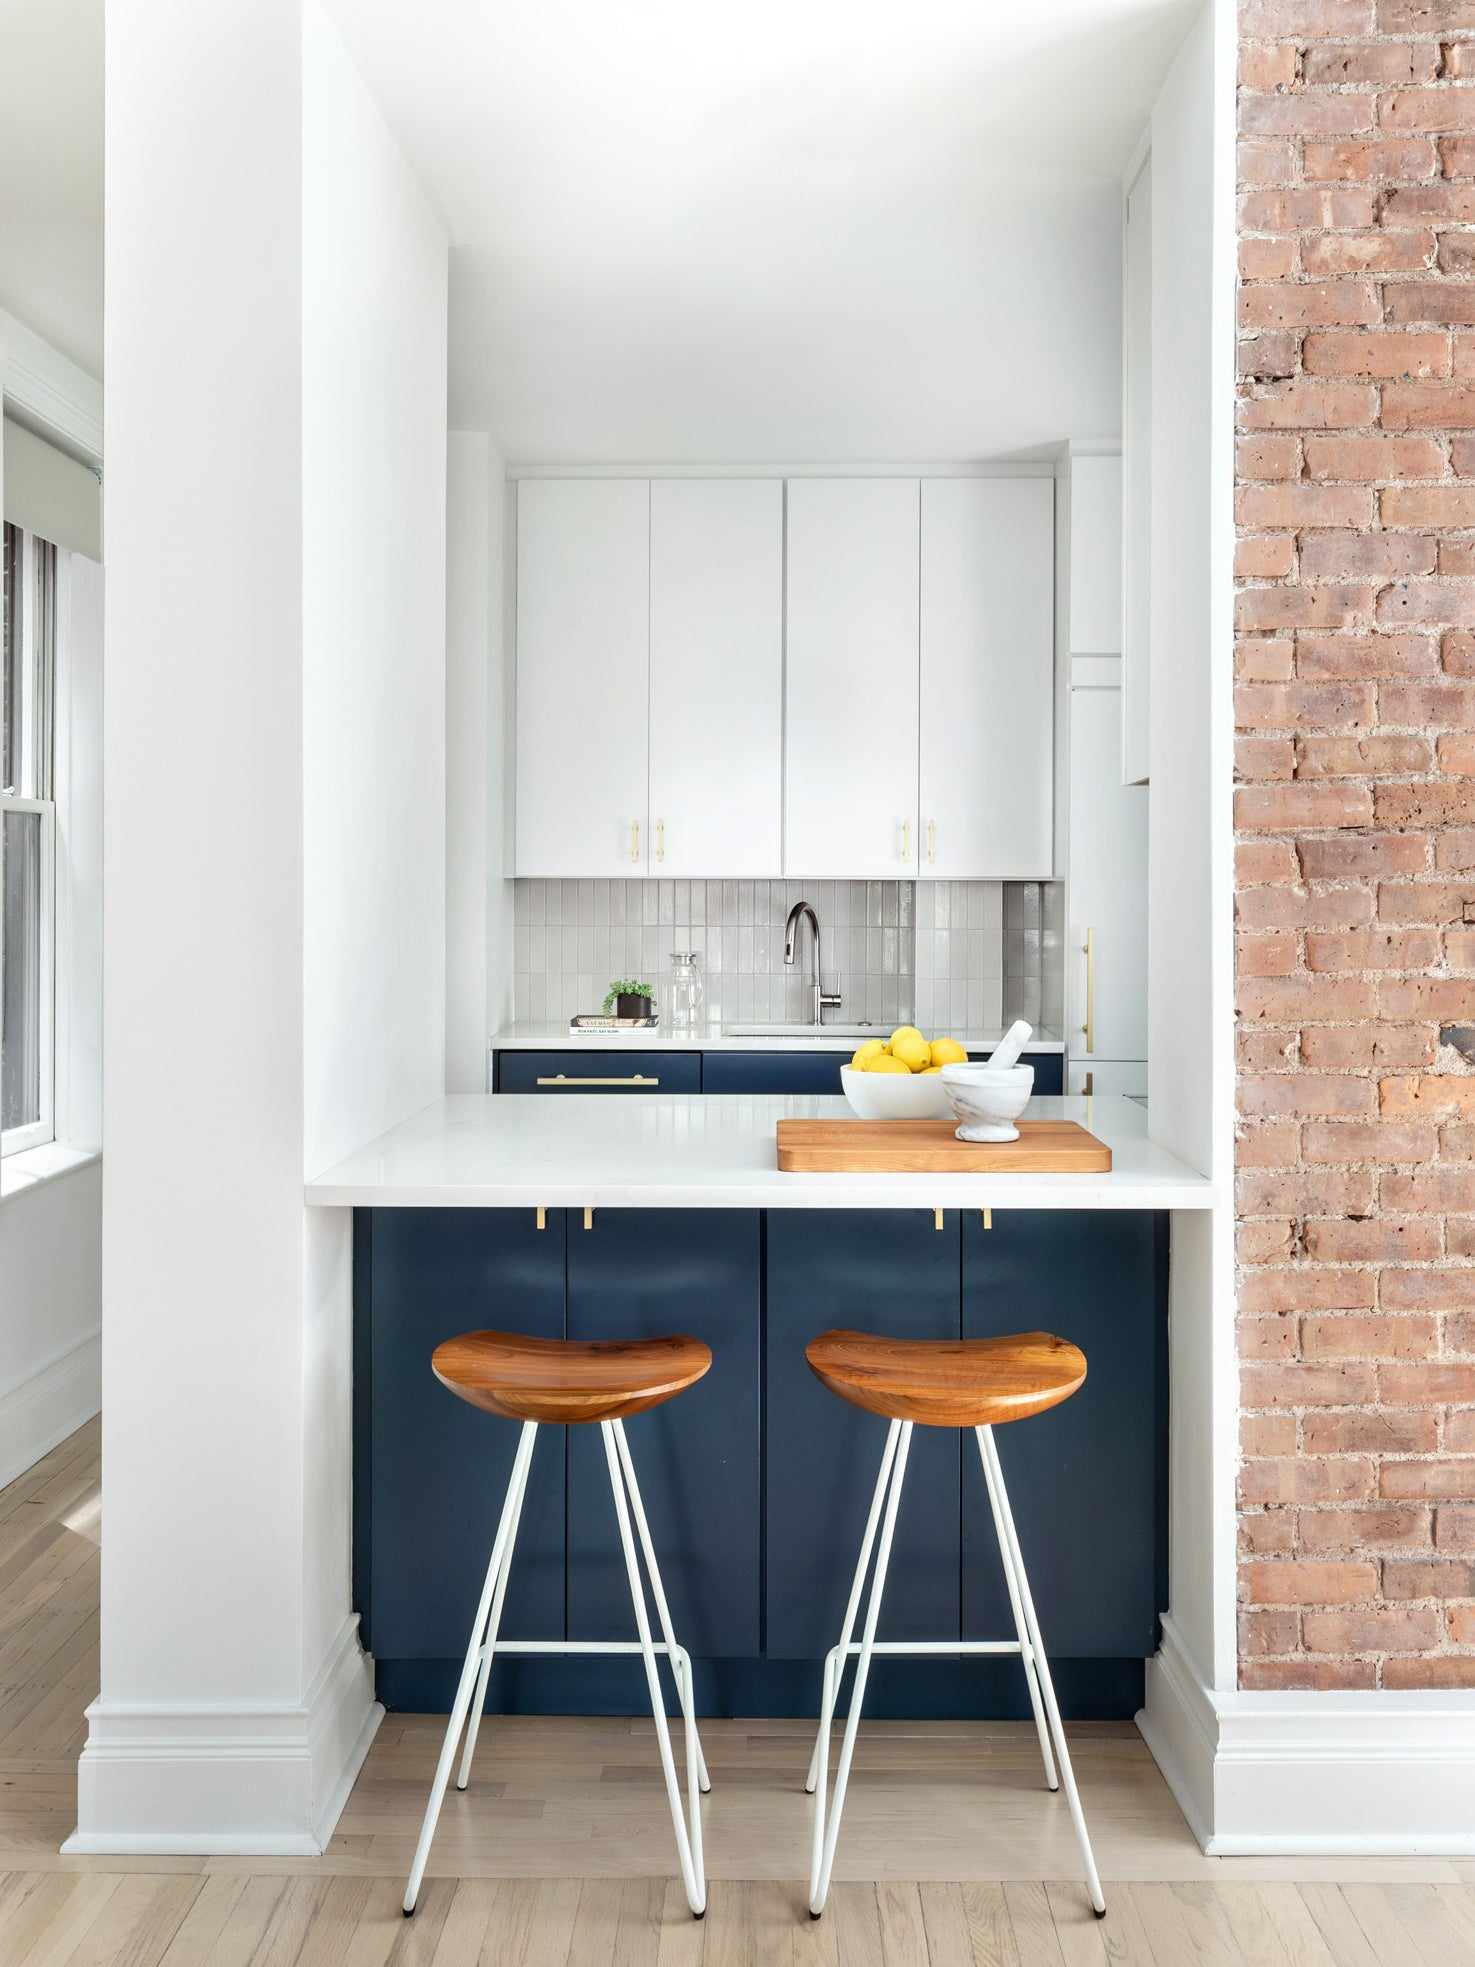 renovated kitchen with bar stools and kitchen counter